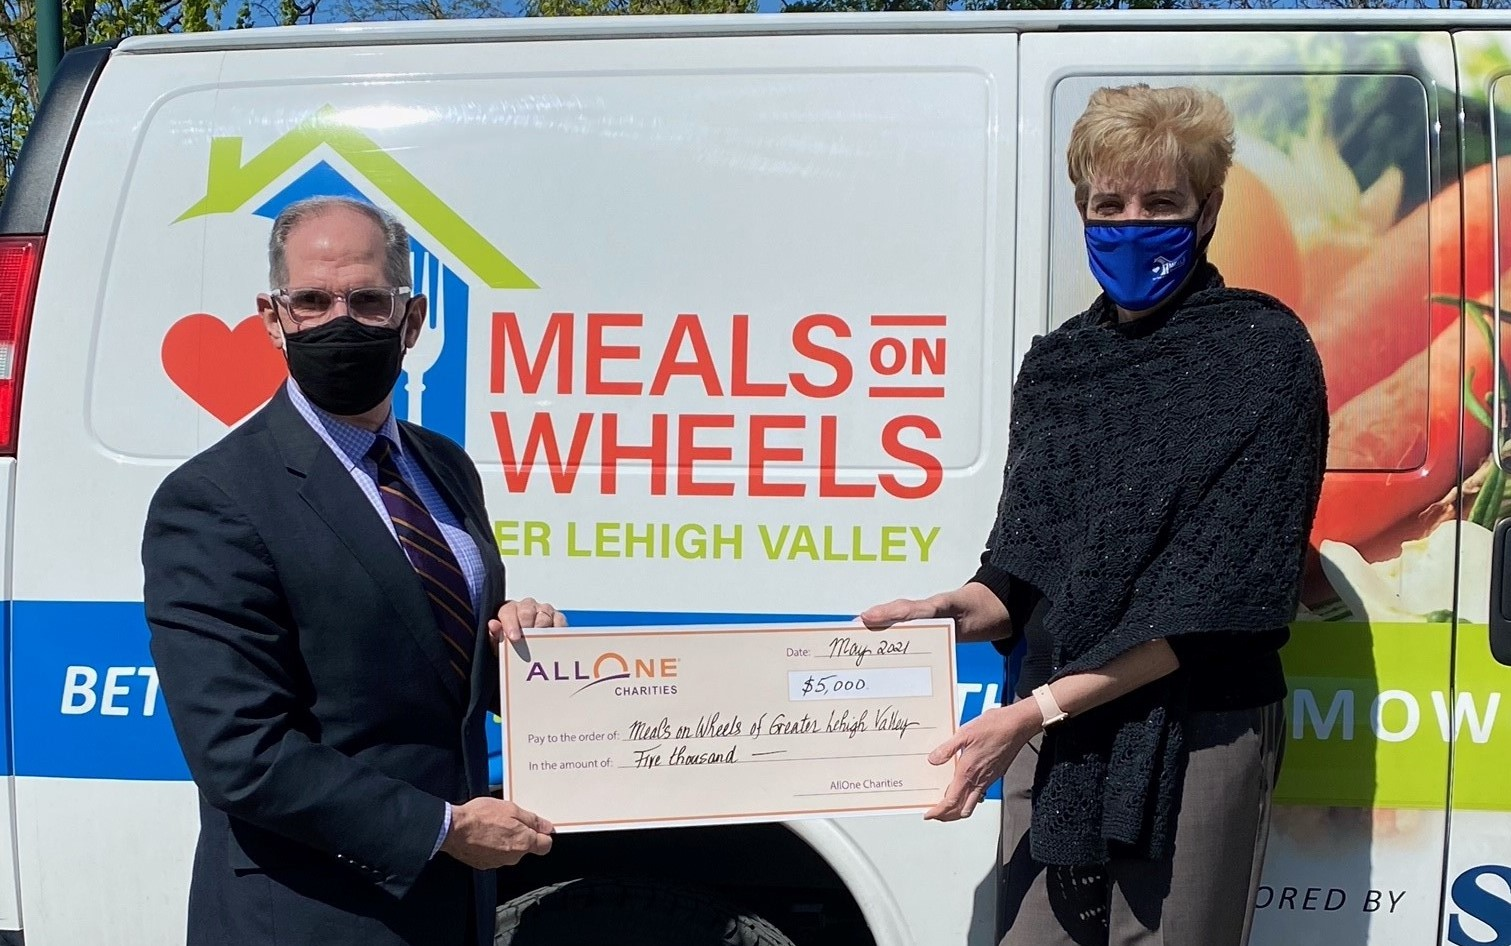 Meals on Wheels Greater Lehigh Valley